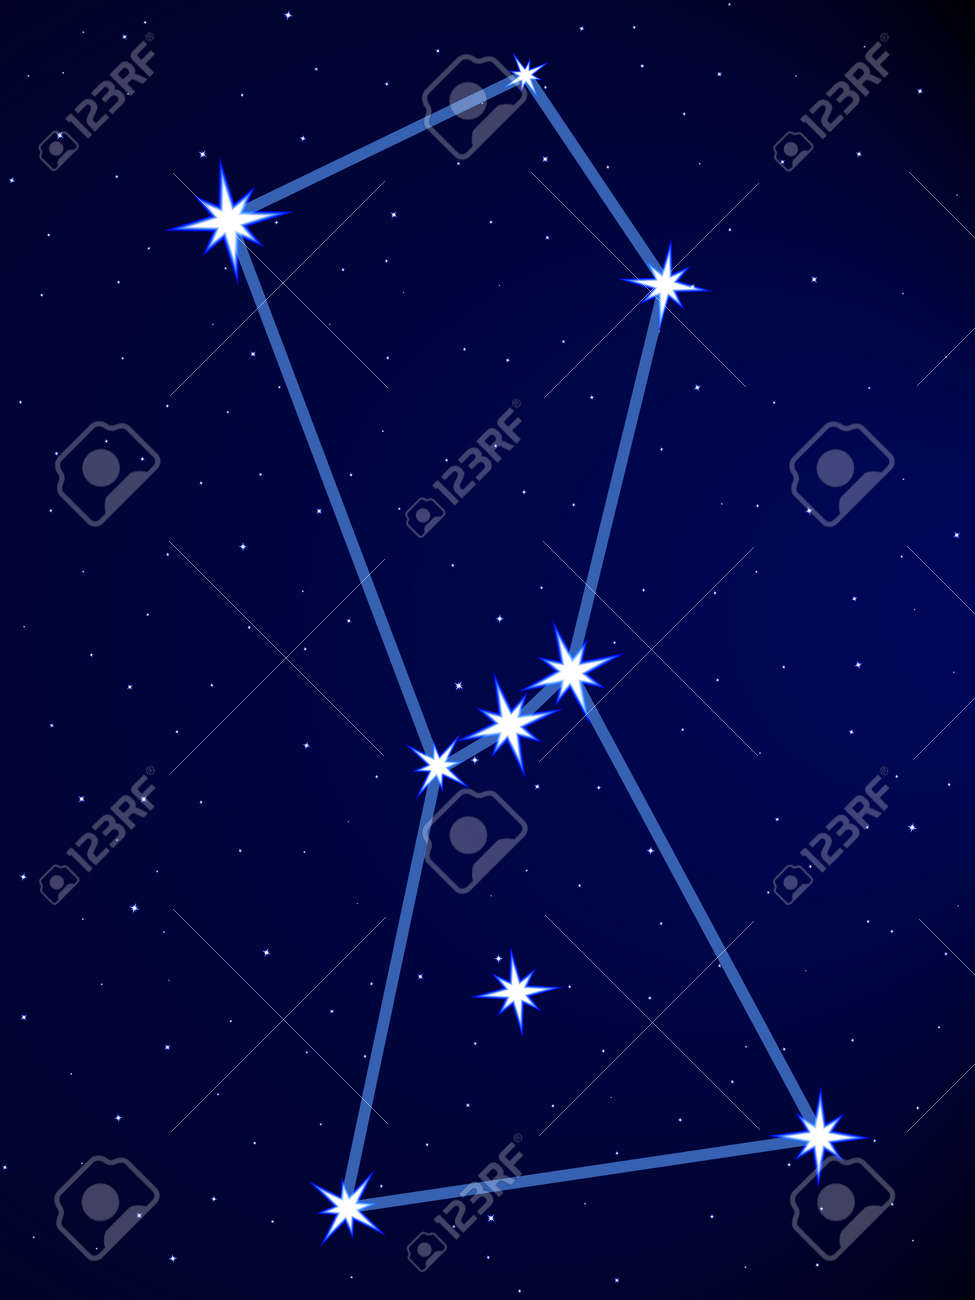 orion constellation on the starry sky royalty free cliparts vectors